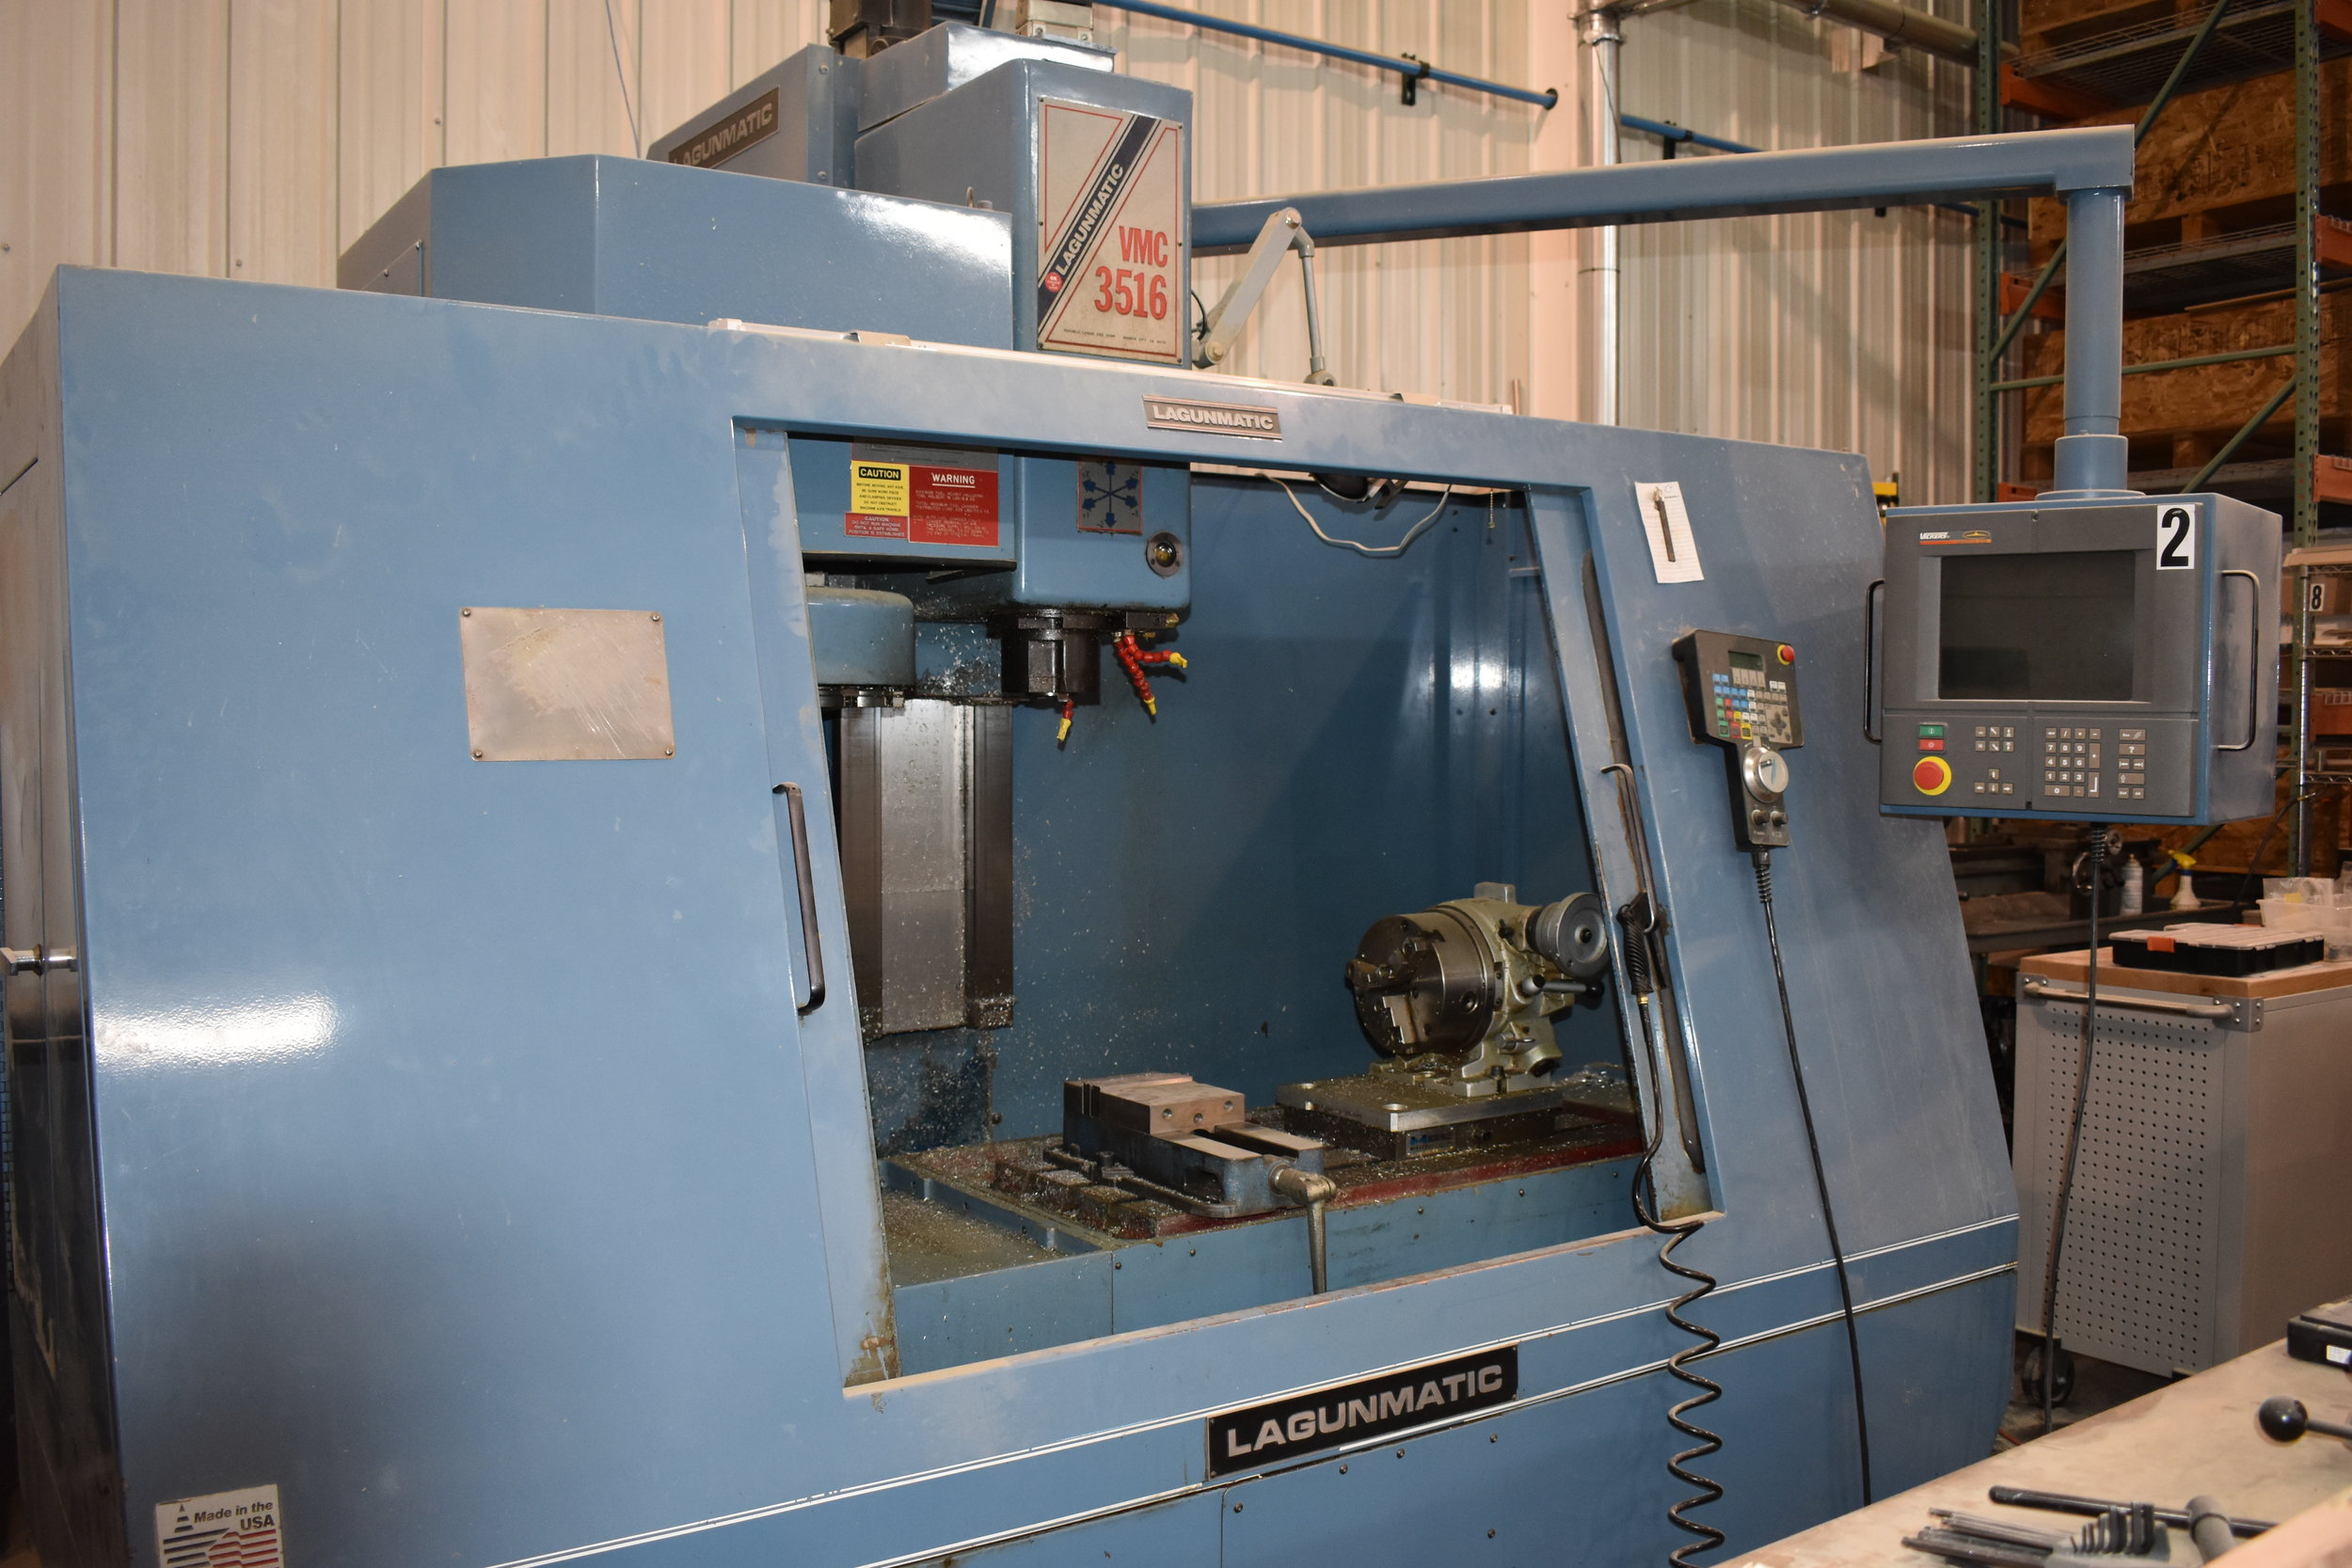 LAGUNAMATIC VMC3516 - Vertical CNC mill used in the production of metal components.